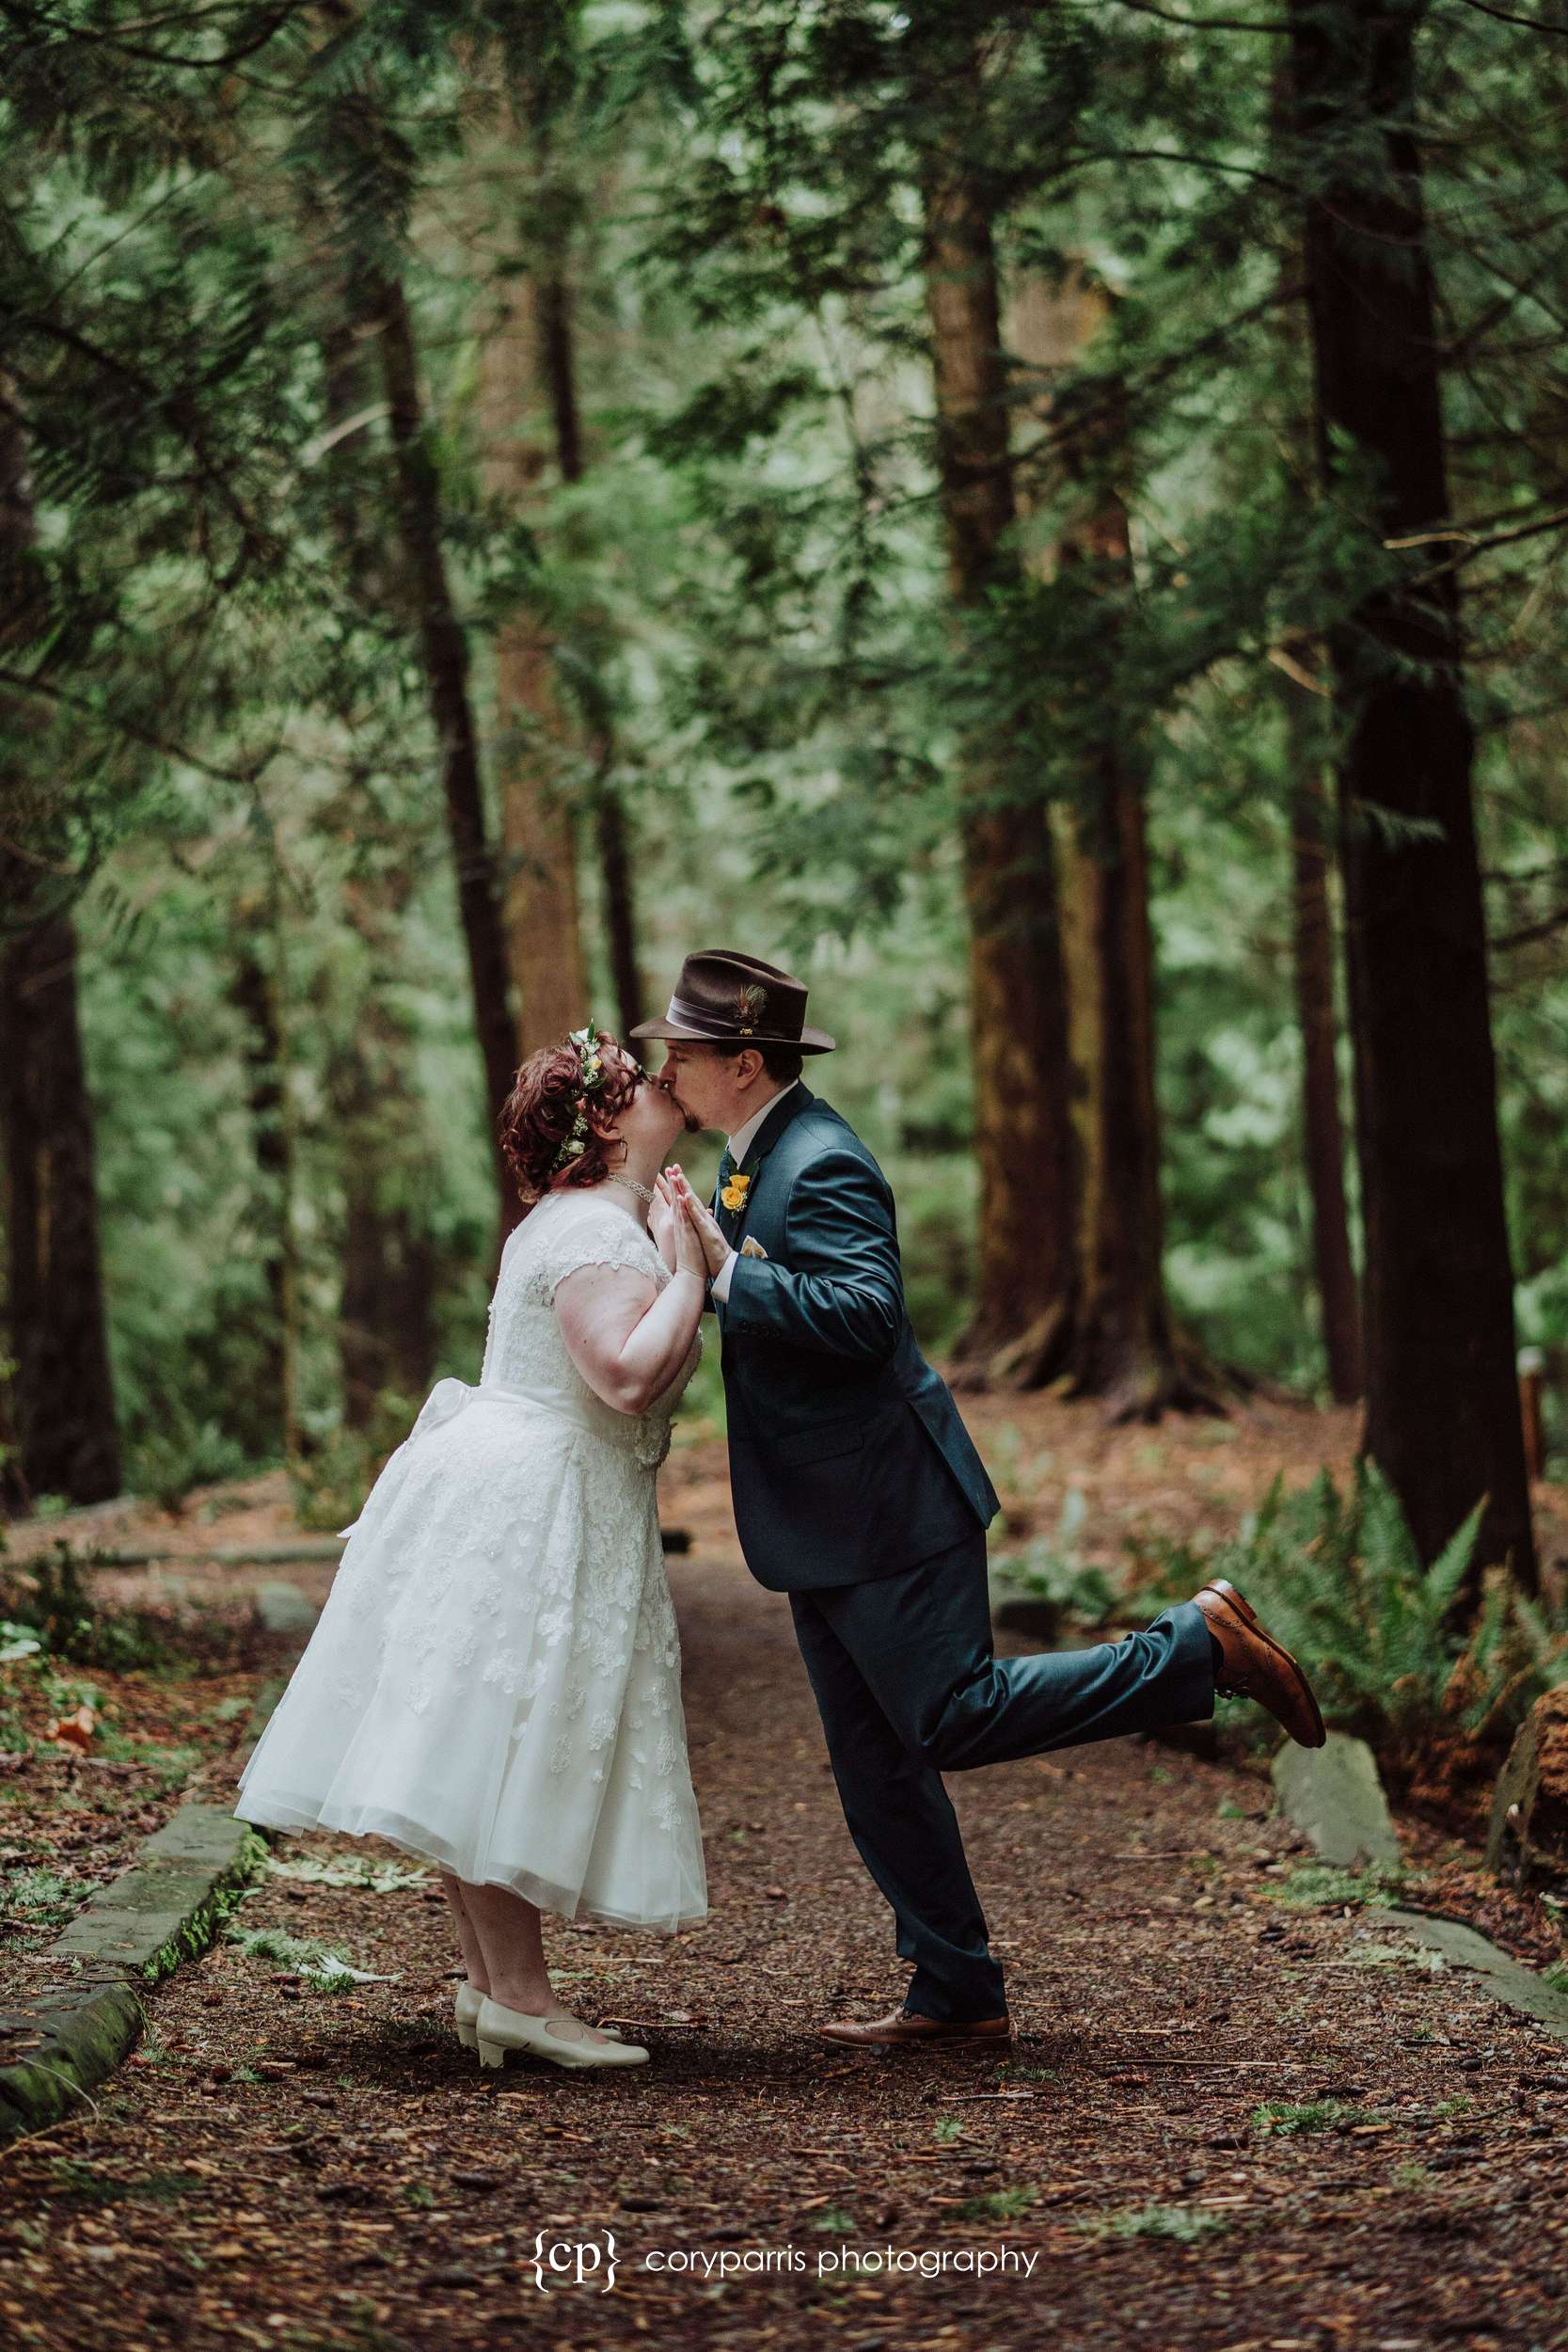 Funny wedding portrait by seattle wedding photographer